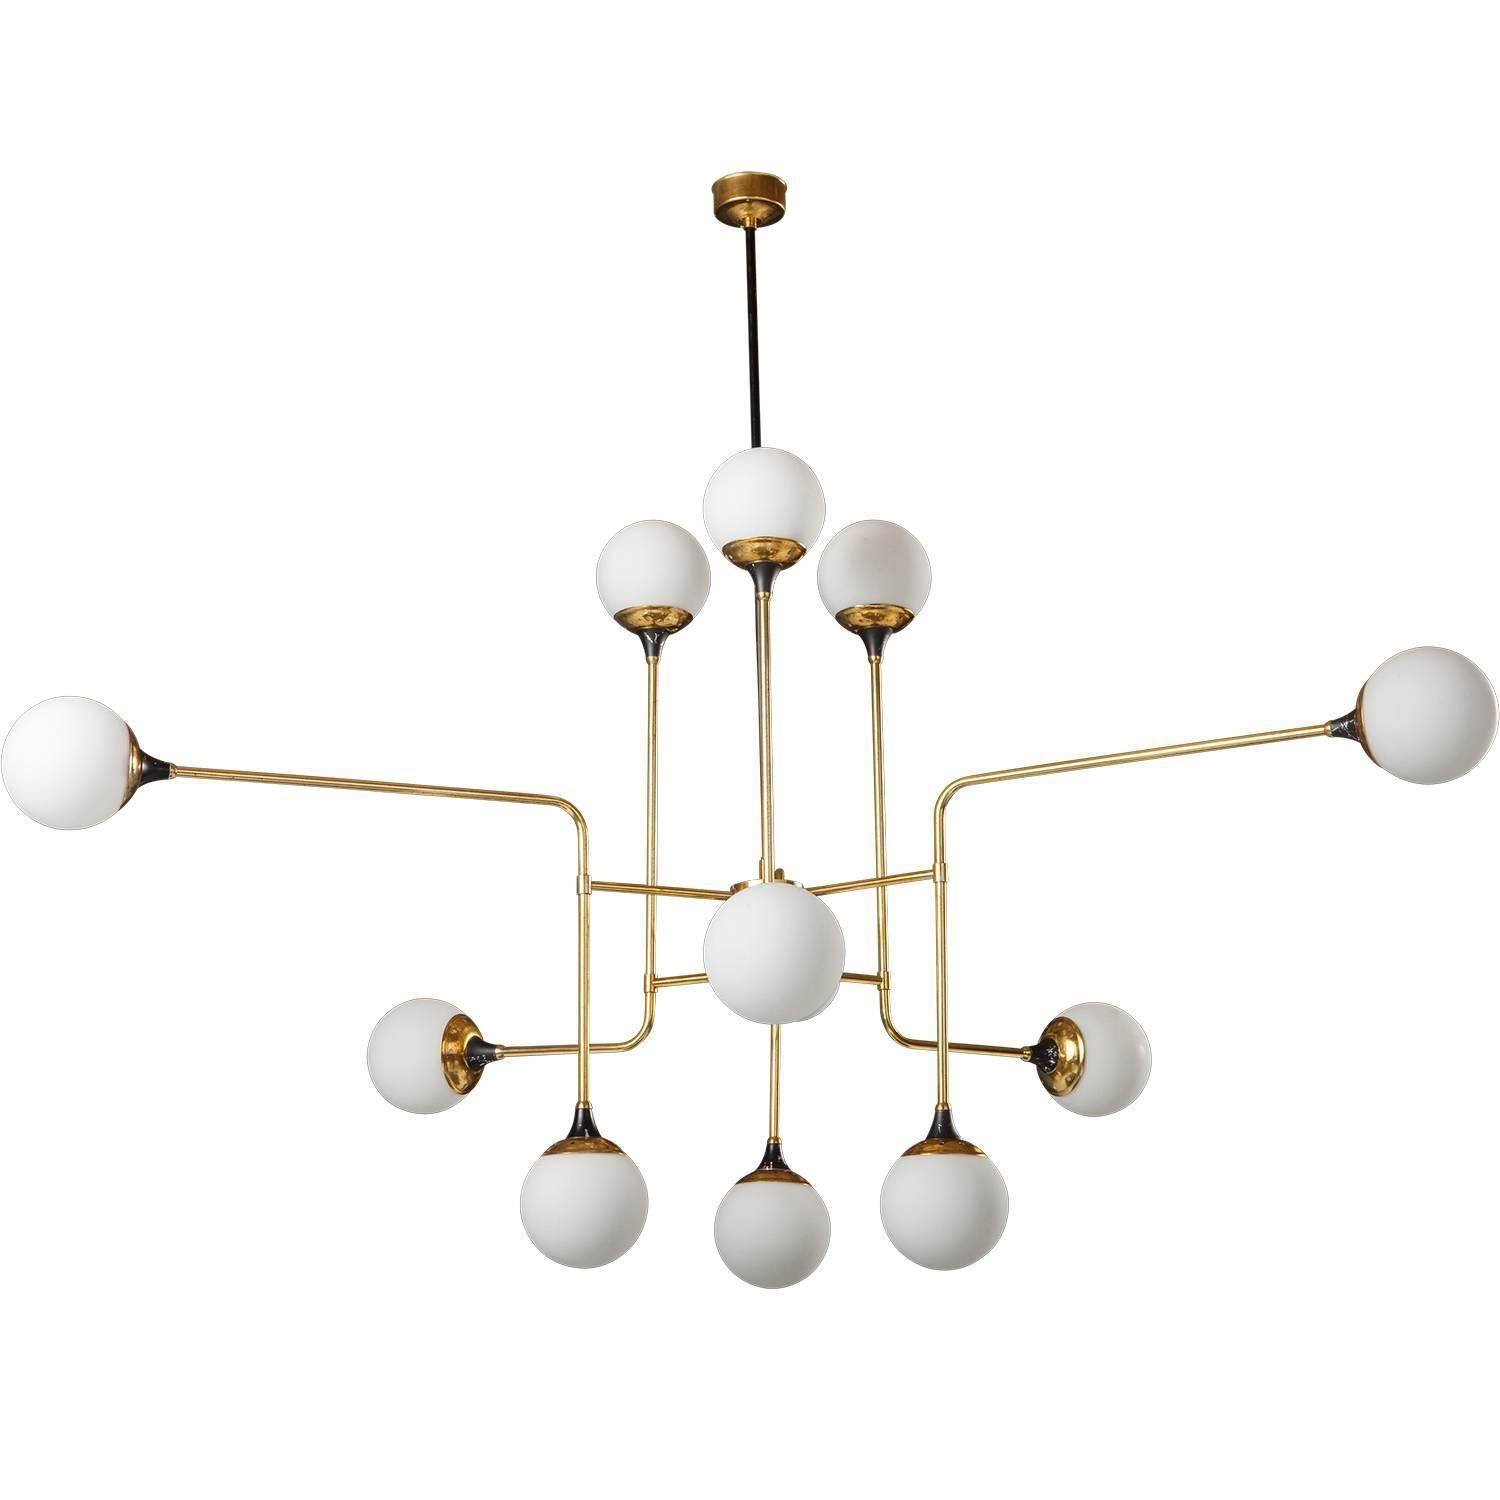 Brass or Opaline Glass Chandelier | From a unique collection of antique and modern chandeliers and pendants at https://www.1stdibs.com/furniture/lighting/chandeliers-pendant-lights/